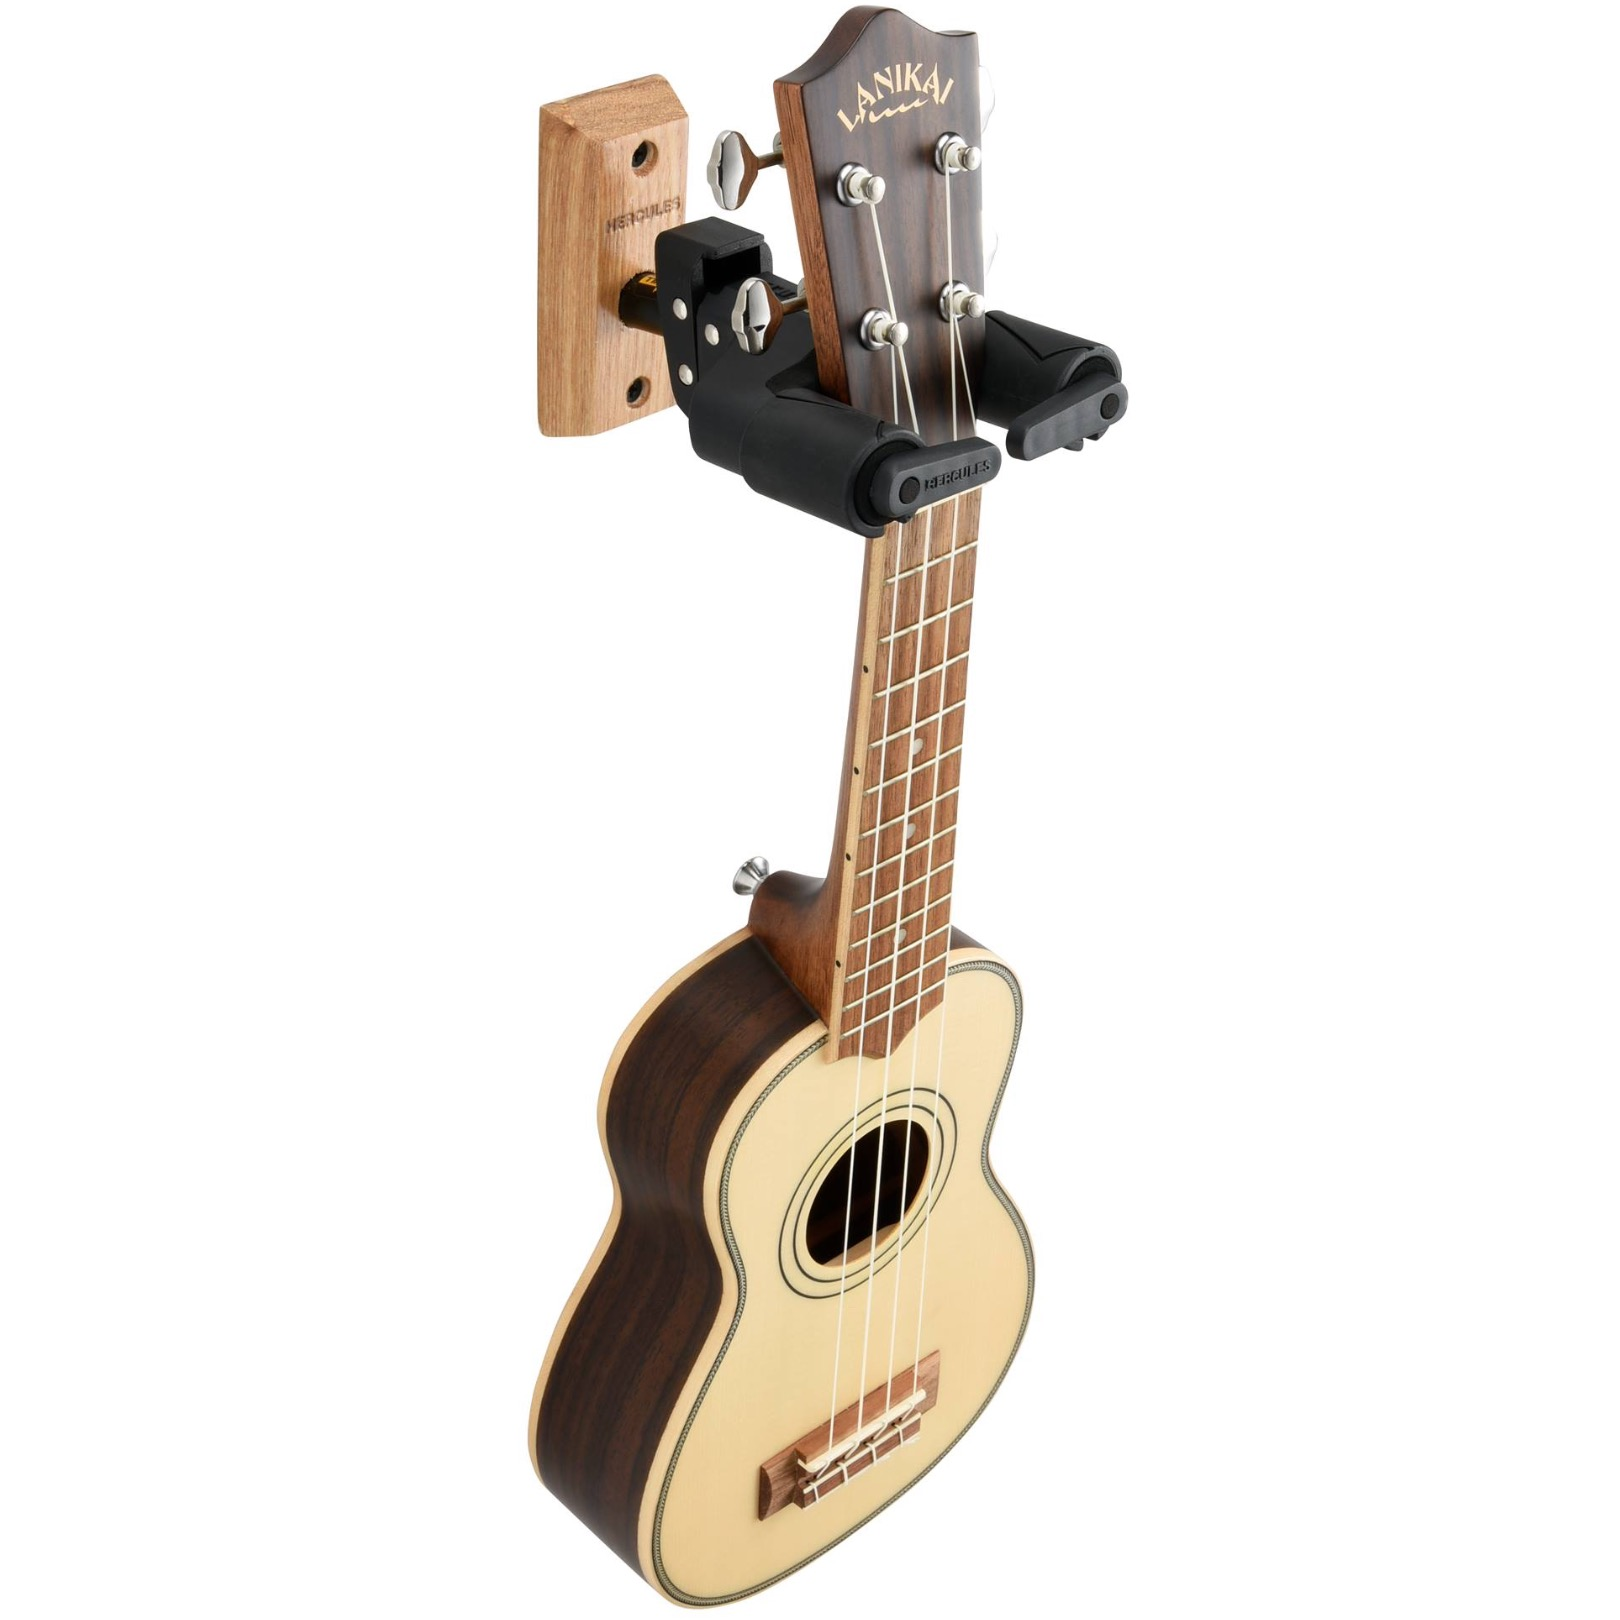 Works for ukeleles too!